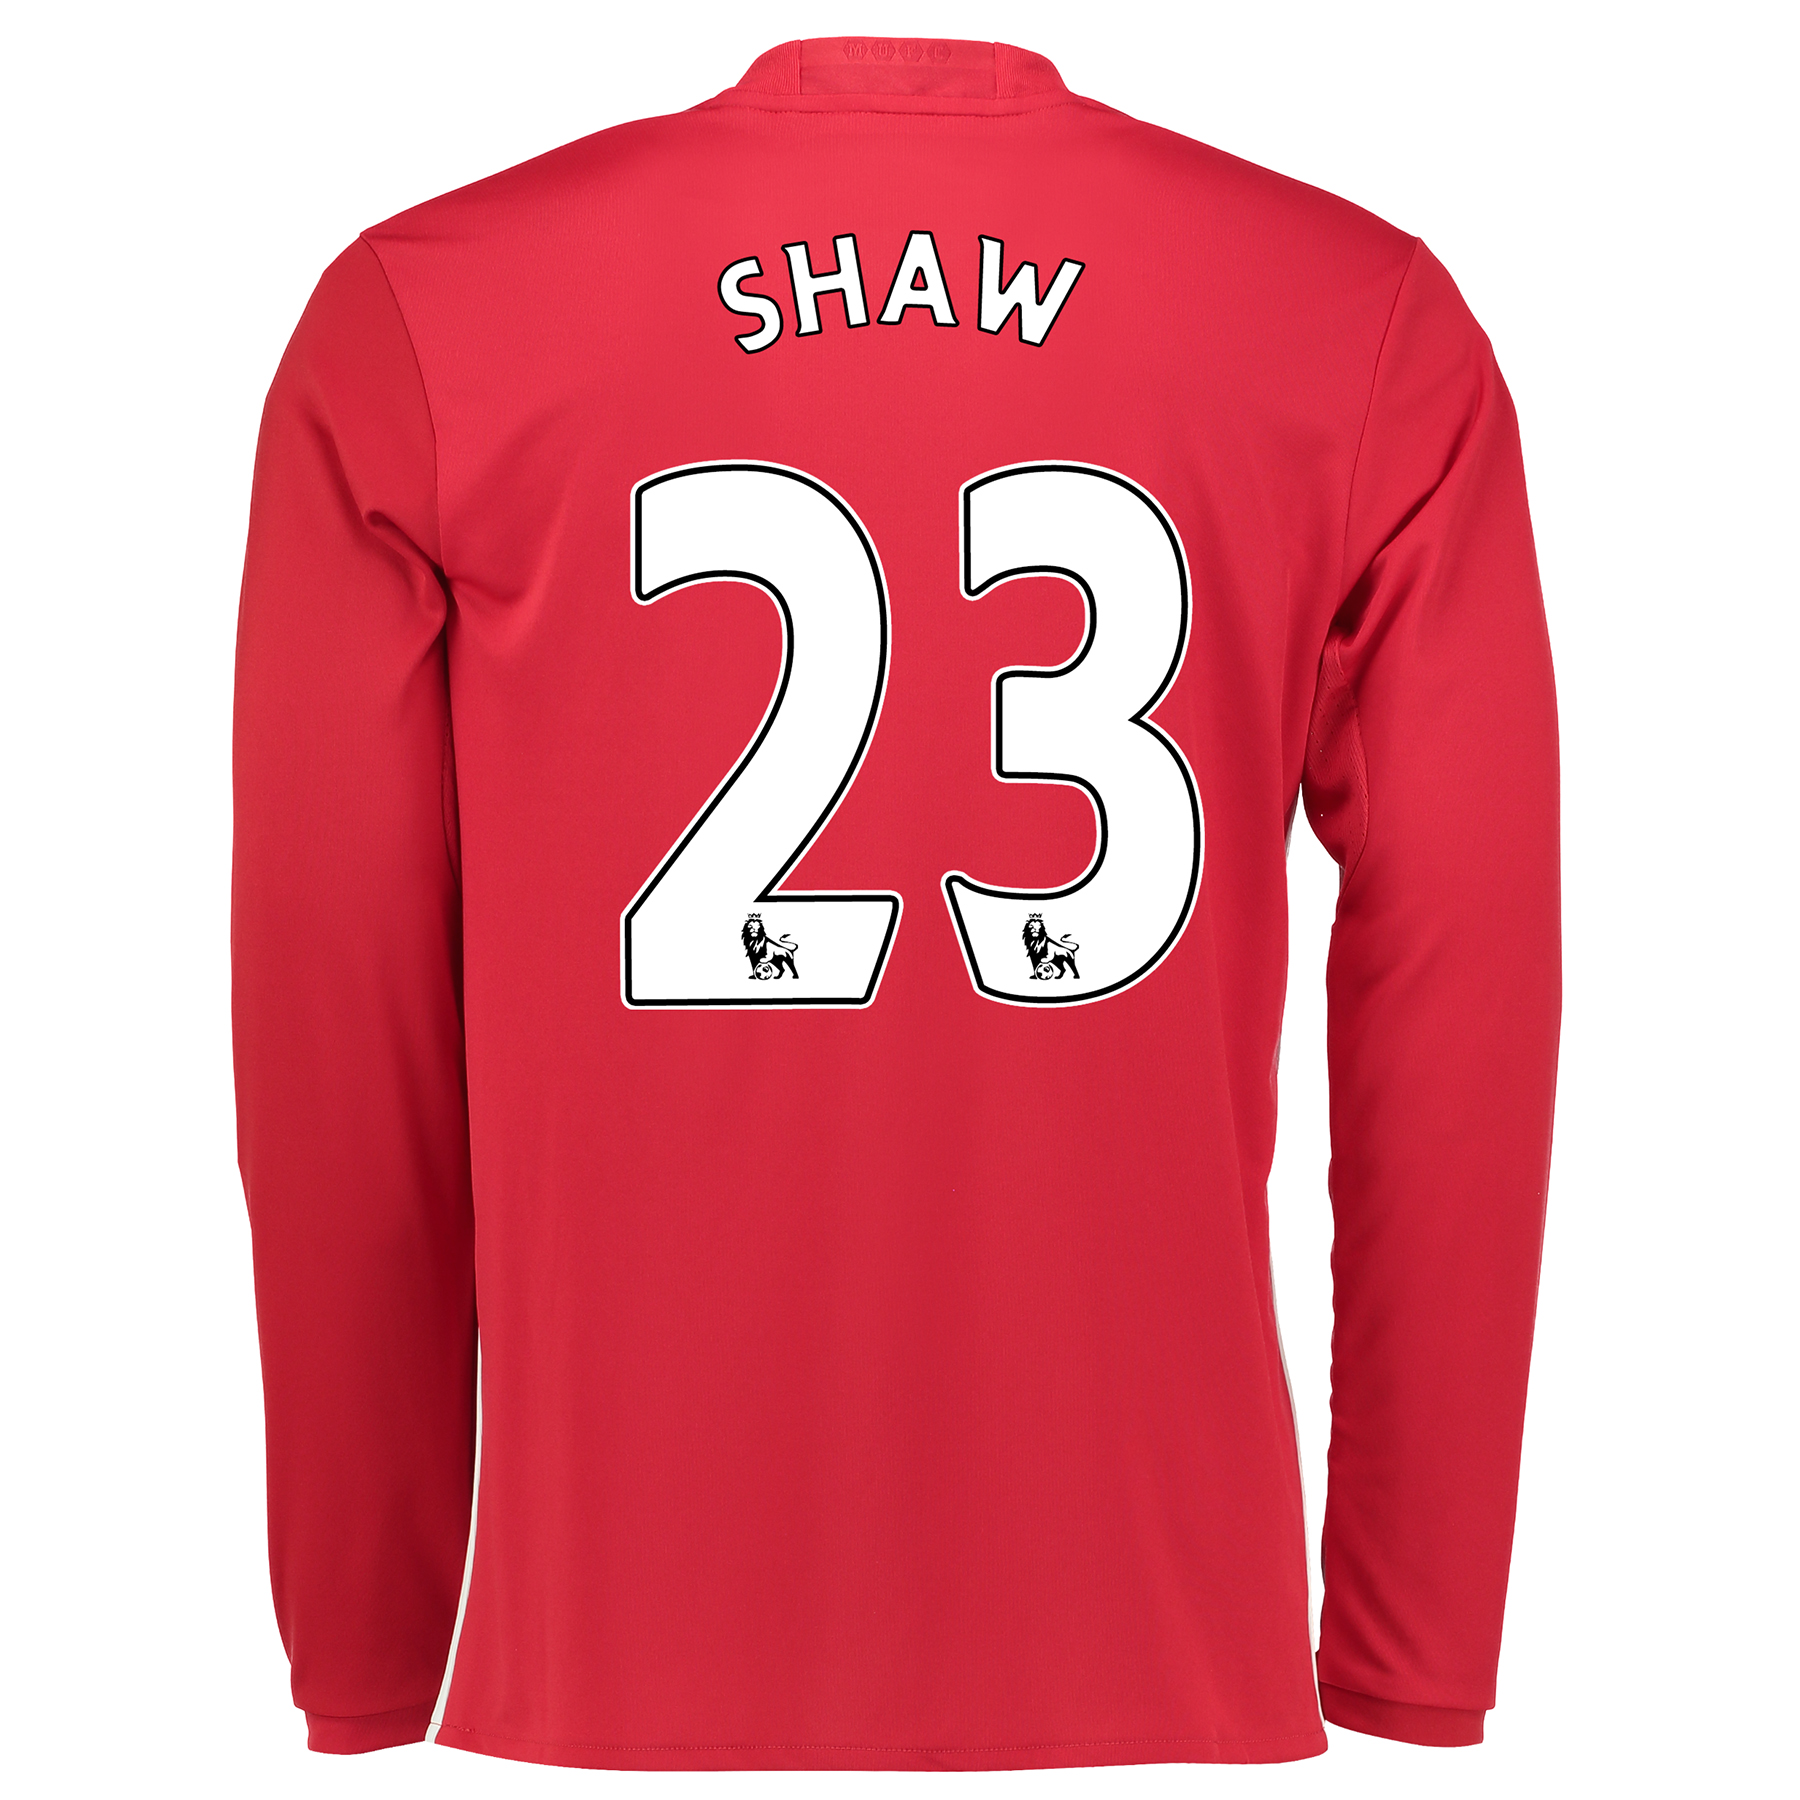 Manchester United Home Shirt 2016-17 - Long Sleeve with Shaw 23 printi